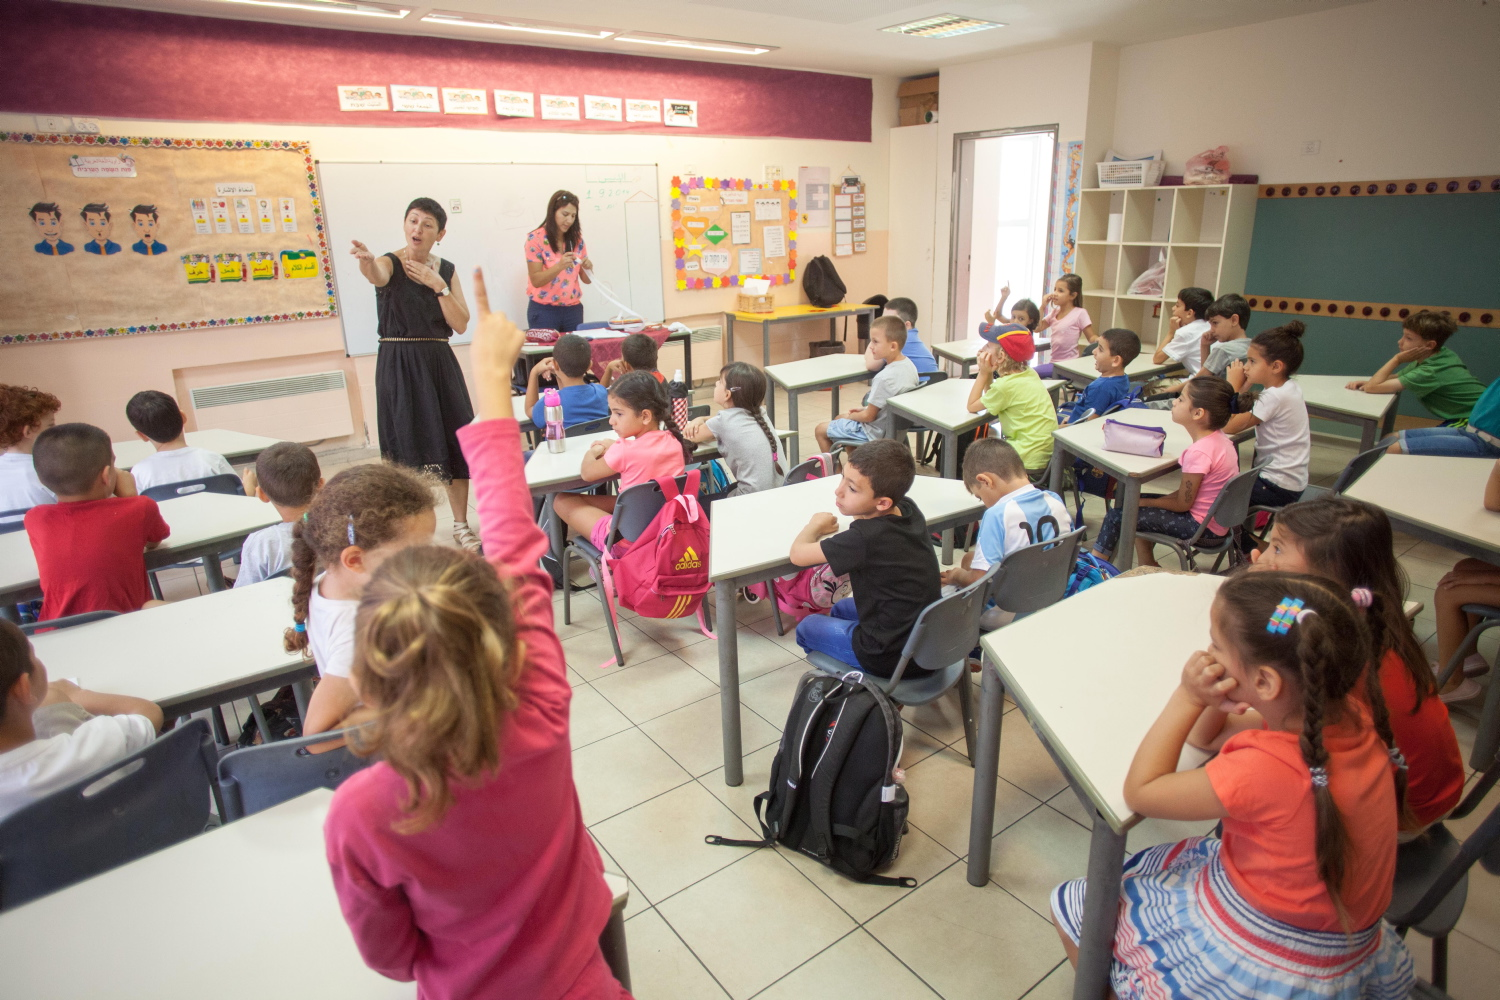 Jerusalem classroom photo